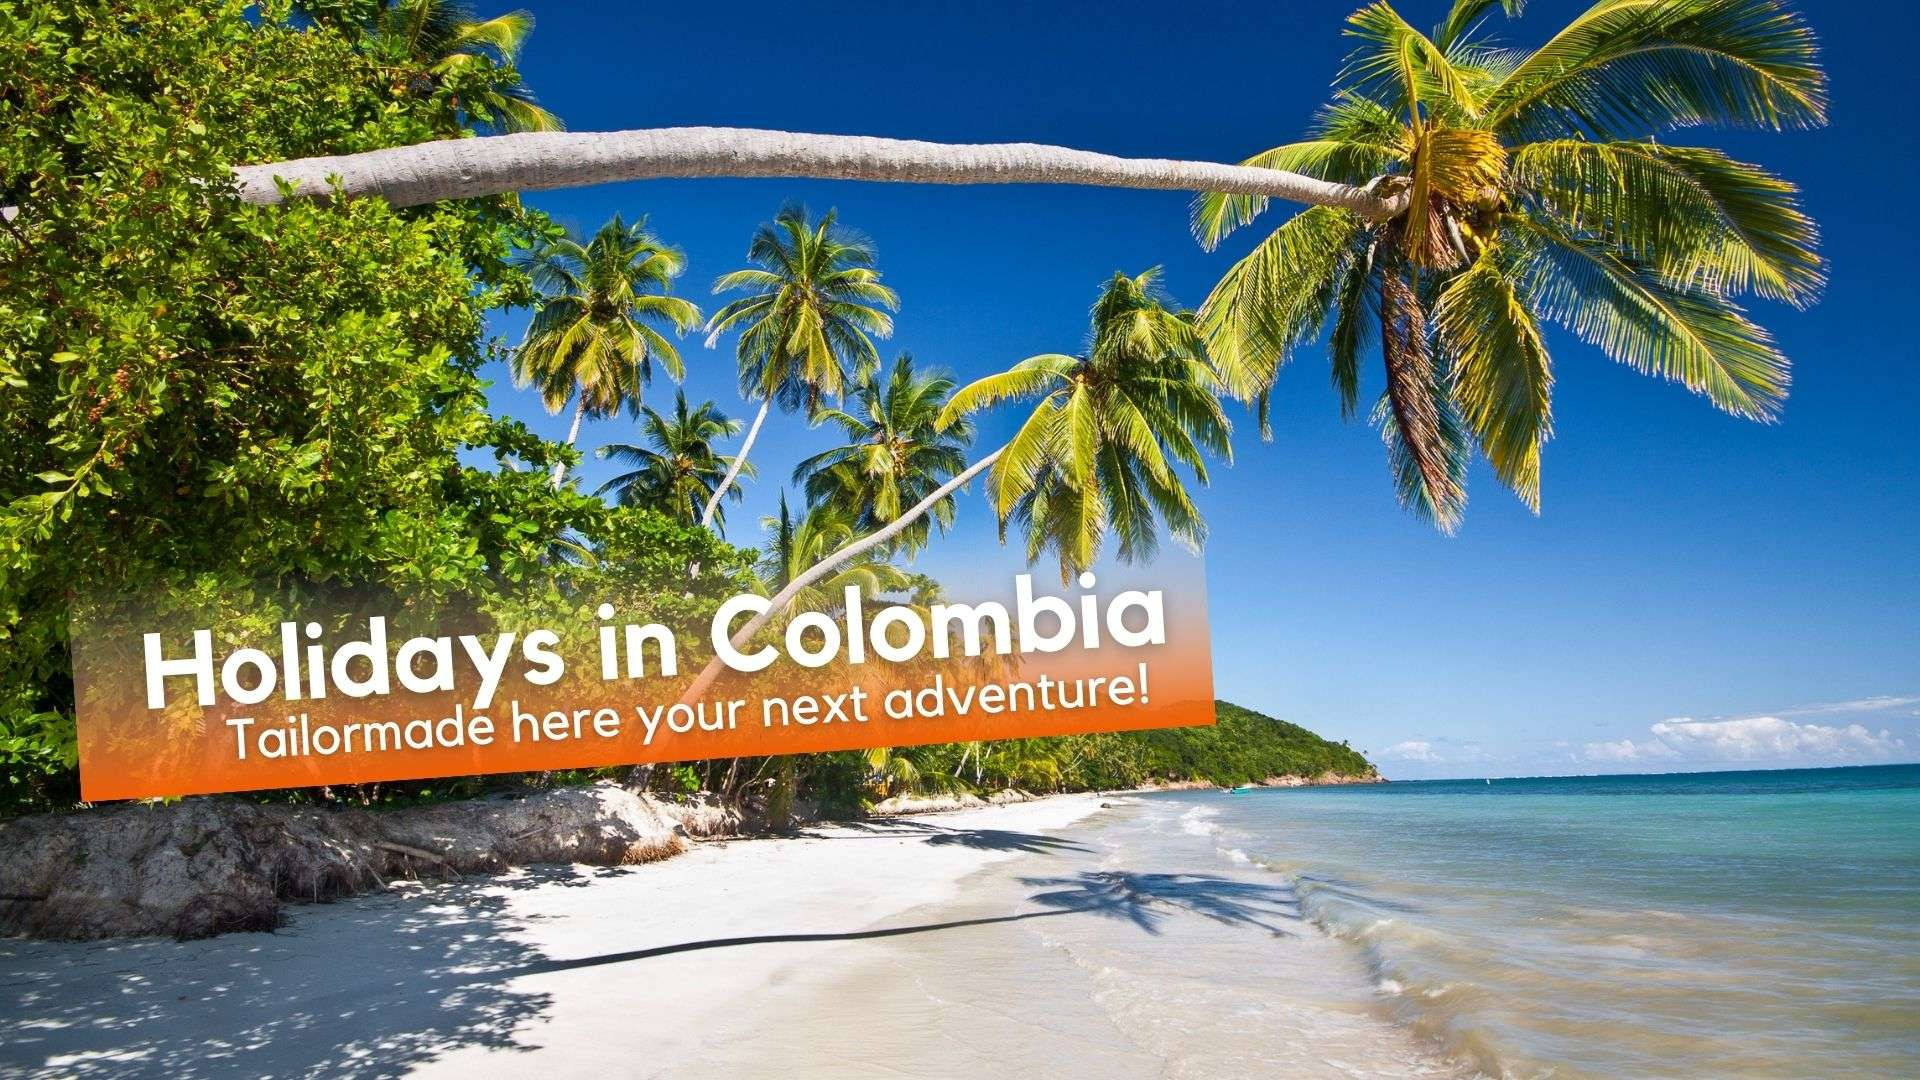 holidays-in-colombia-tourpackages-tailormade